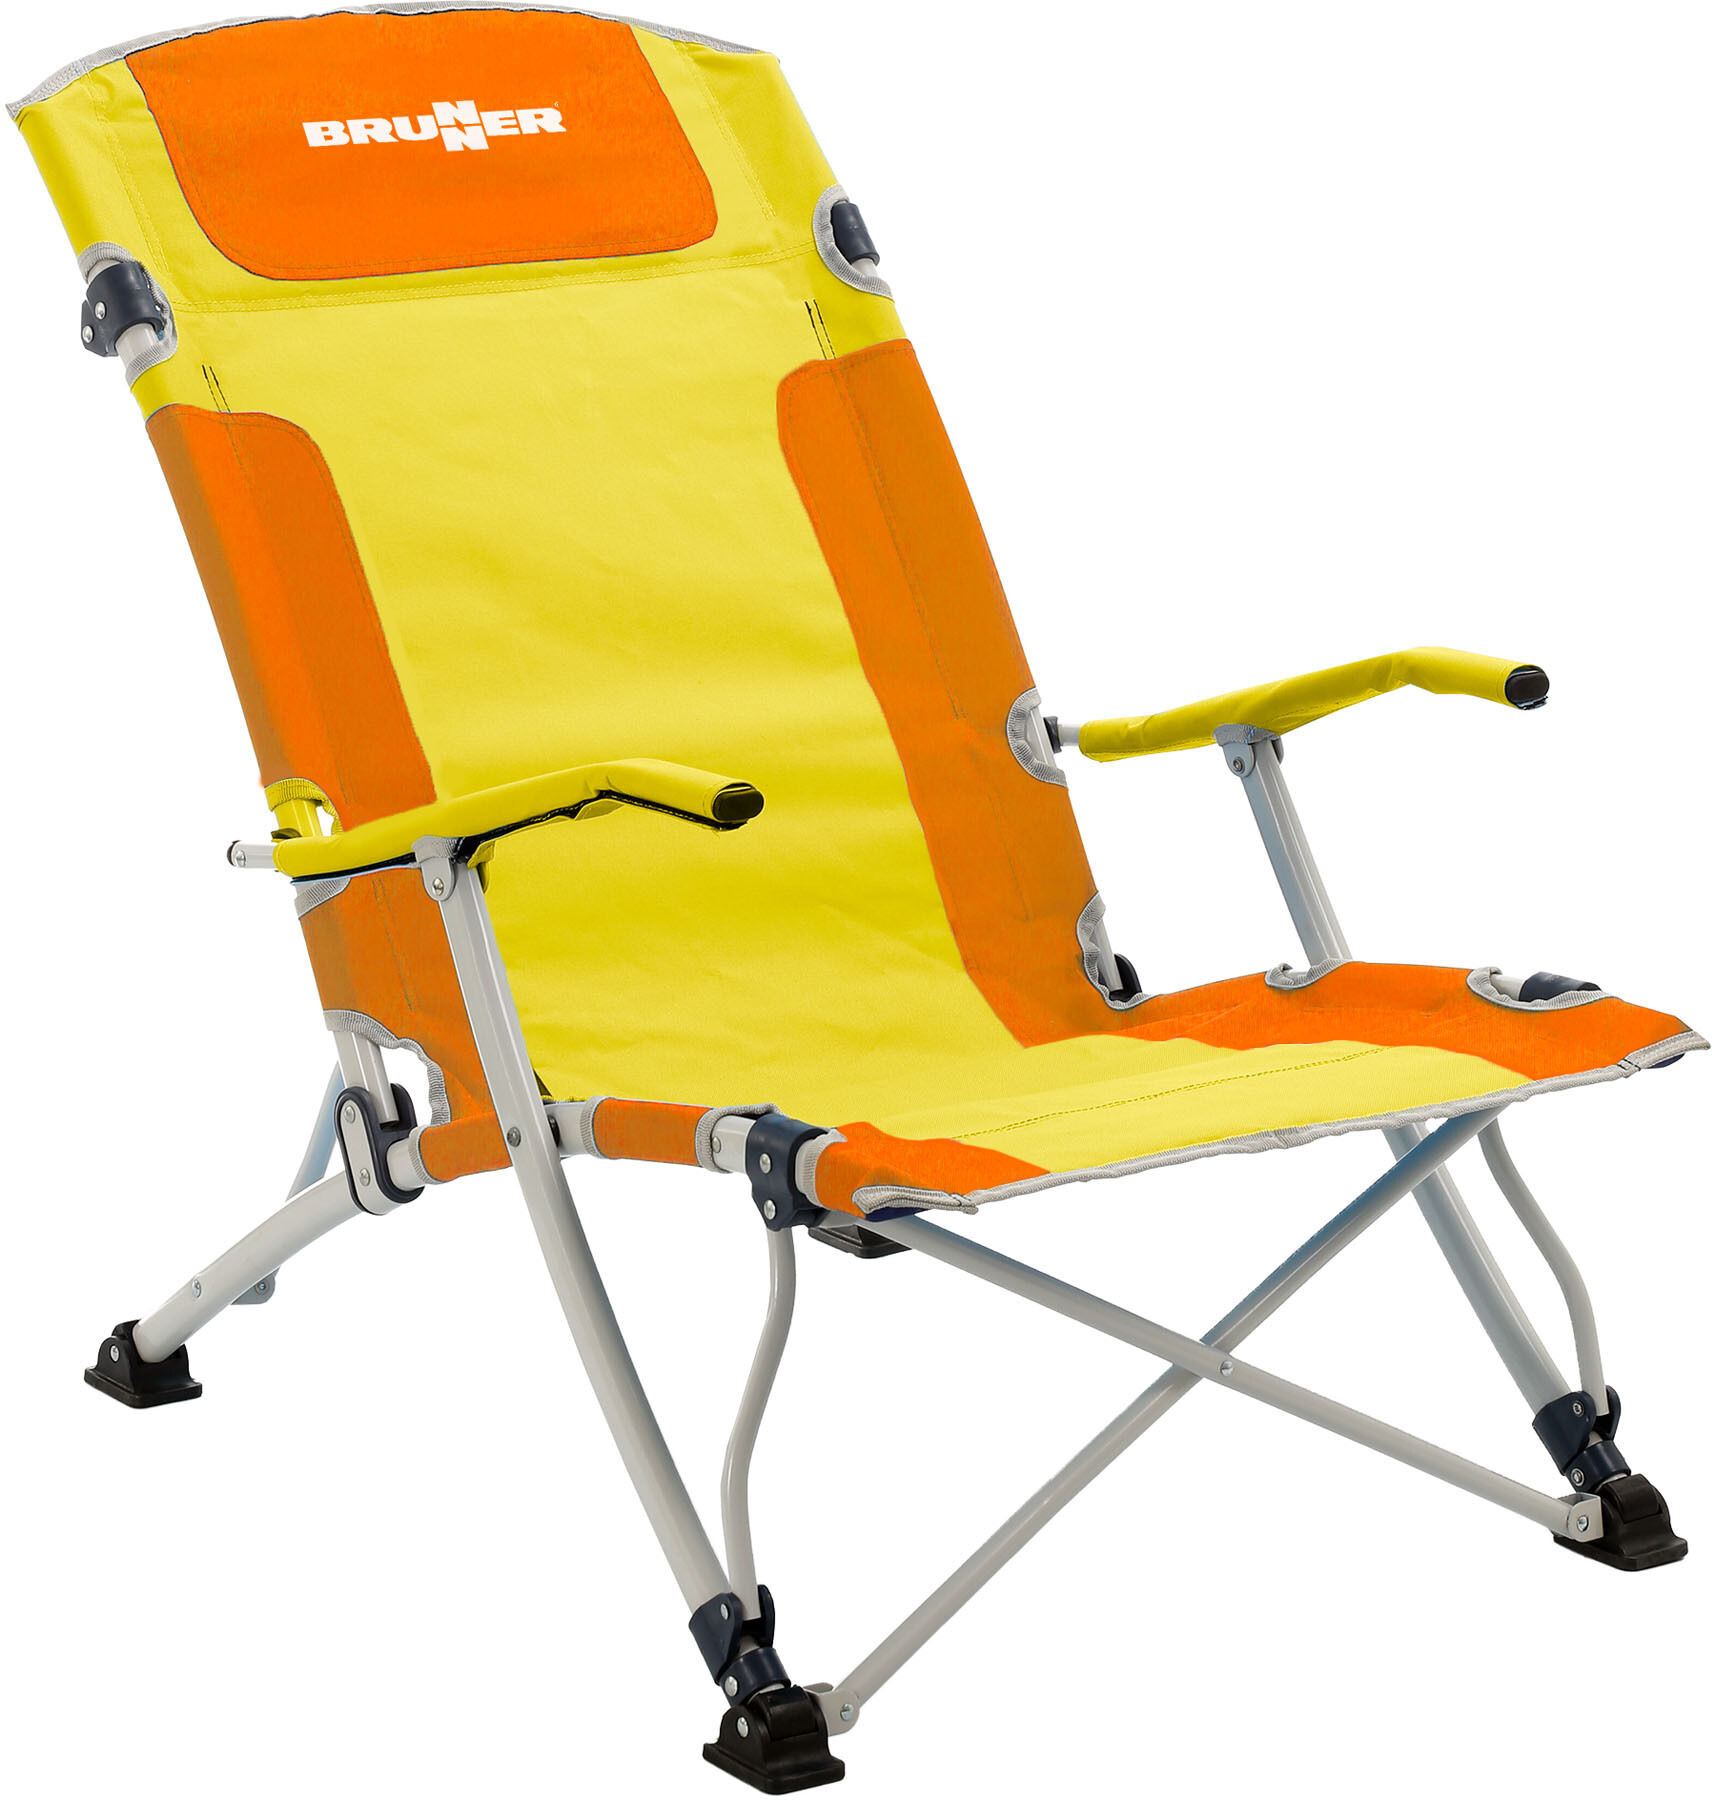 Brunner Bula XL Chair Orange Yellow At Addnature